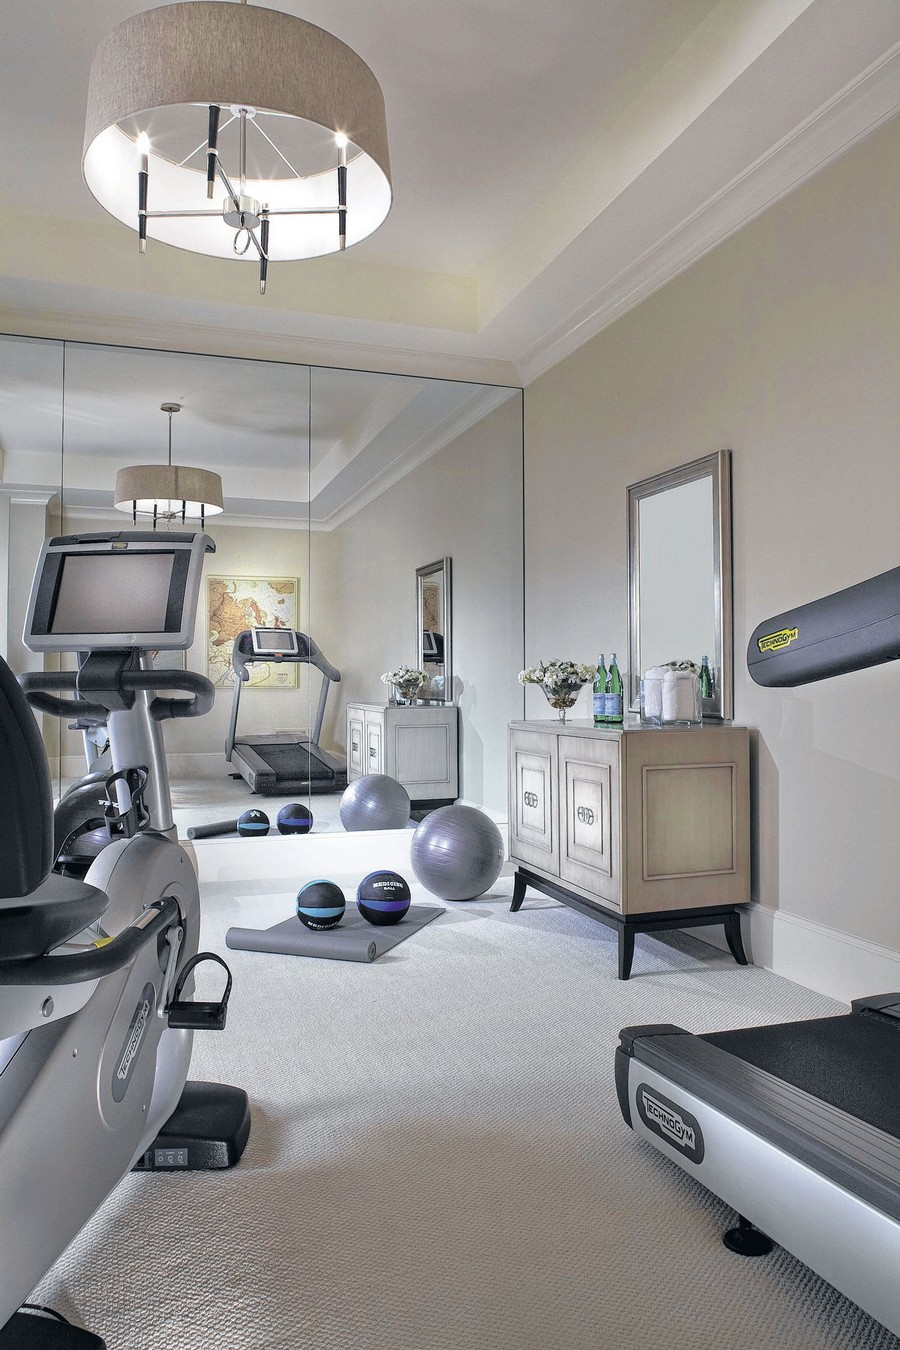 Home gym interior design tips home interior design for Interior design advice